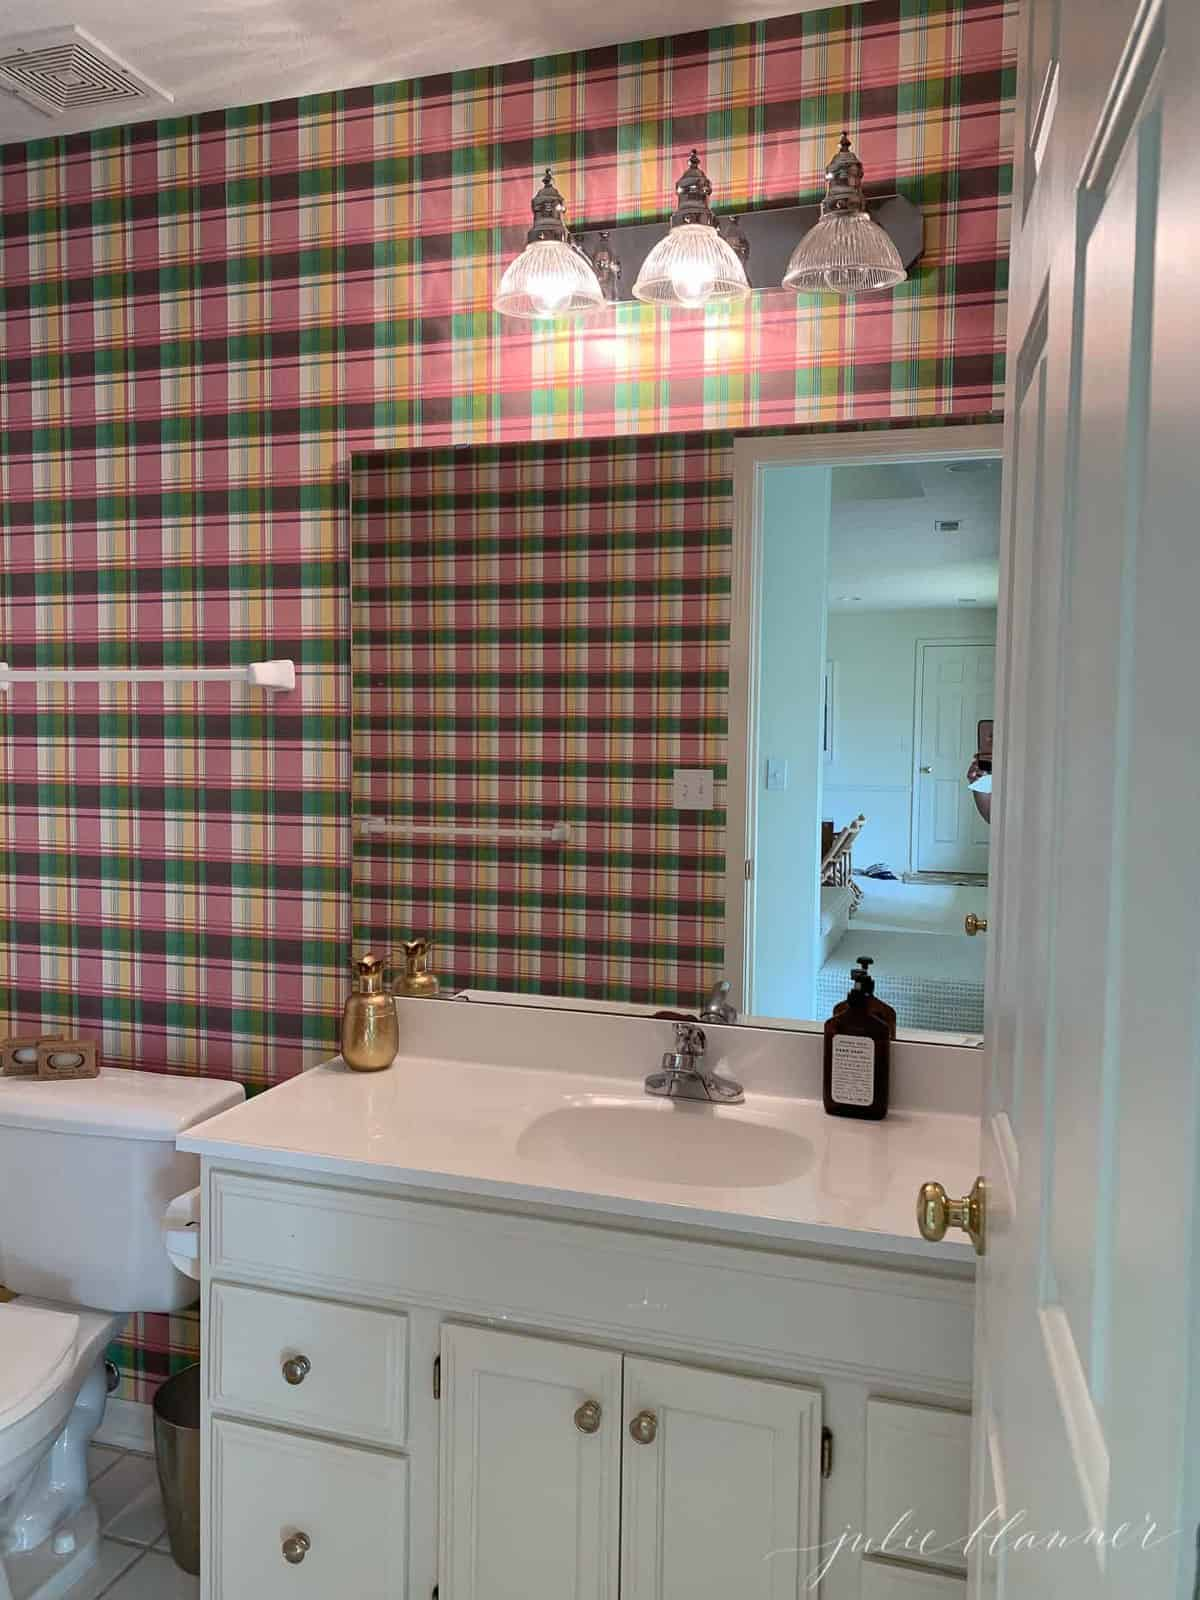 green and maroon plaid builders bath